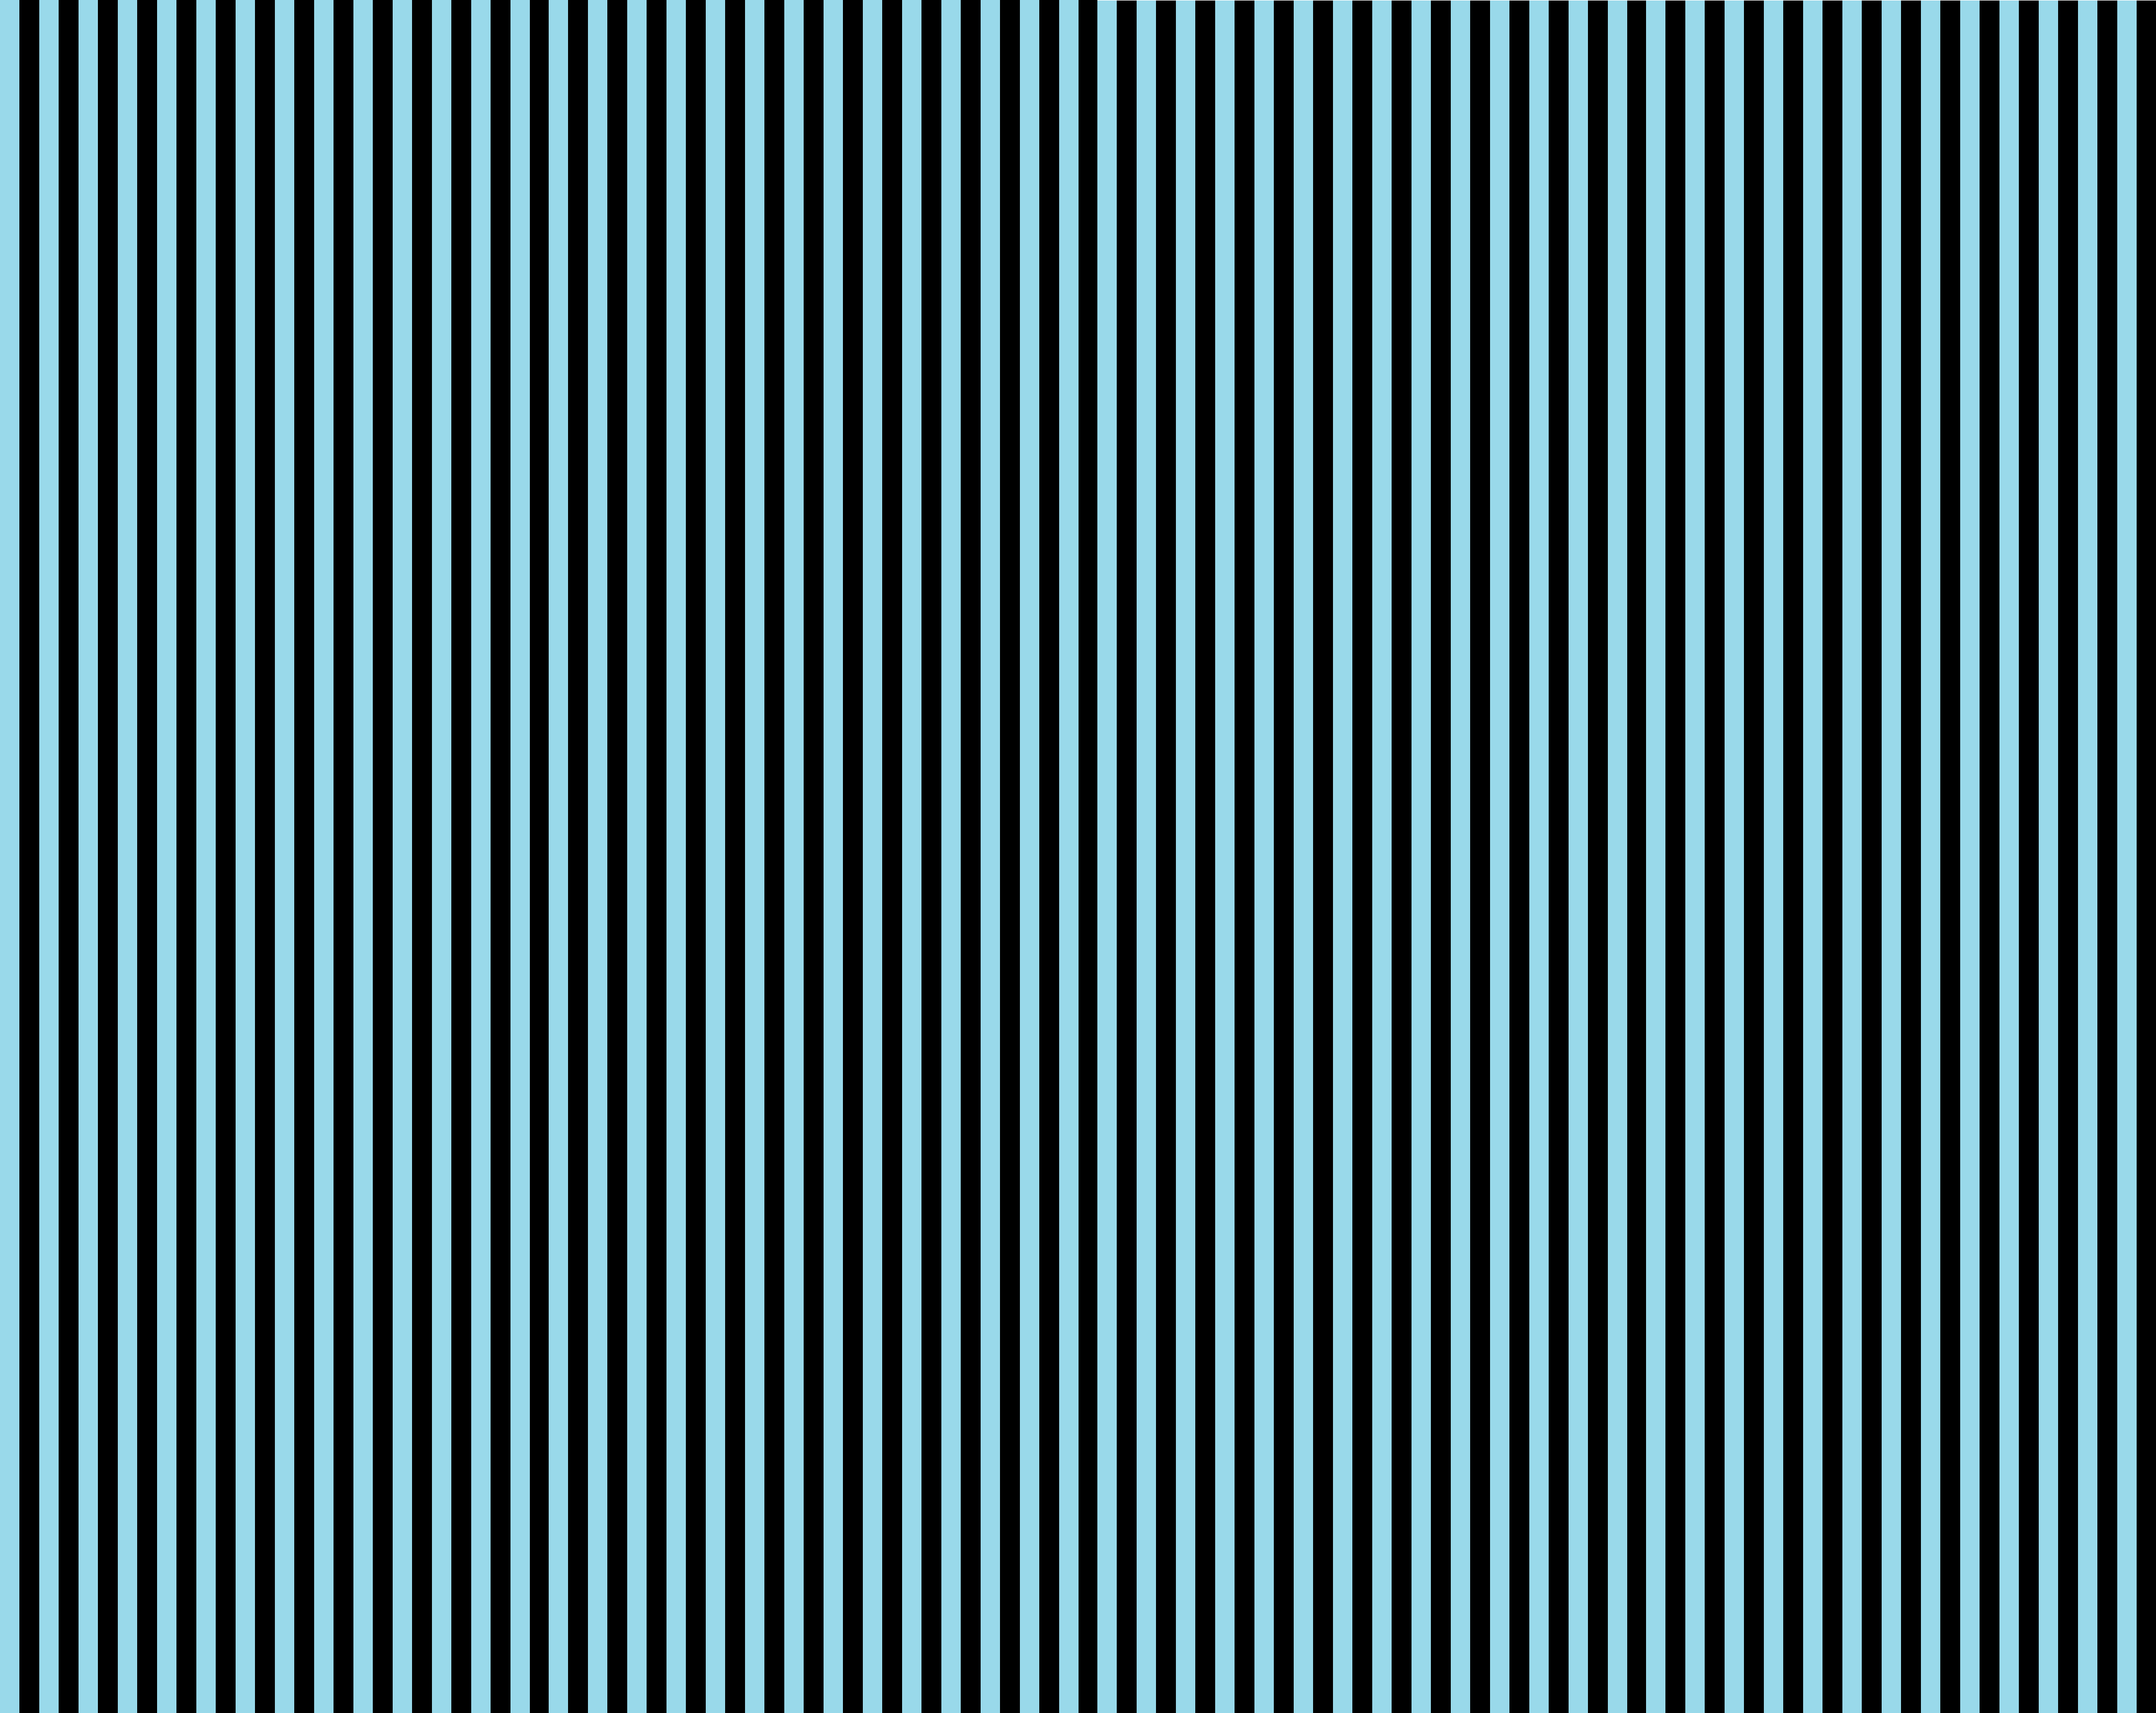 black and babyblue stripe background by ombrasova on